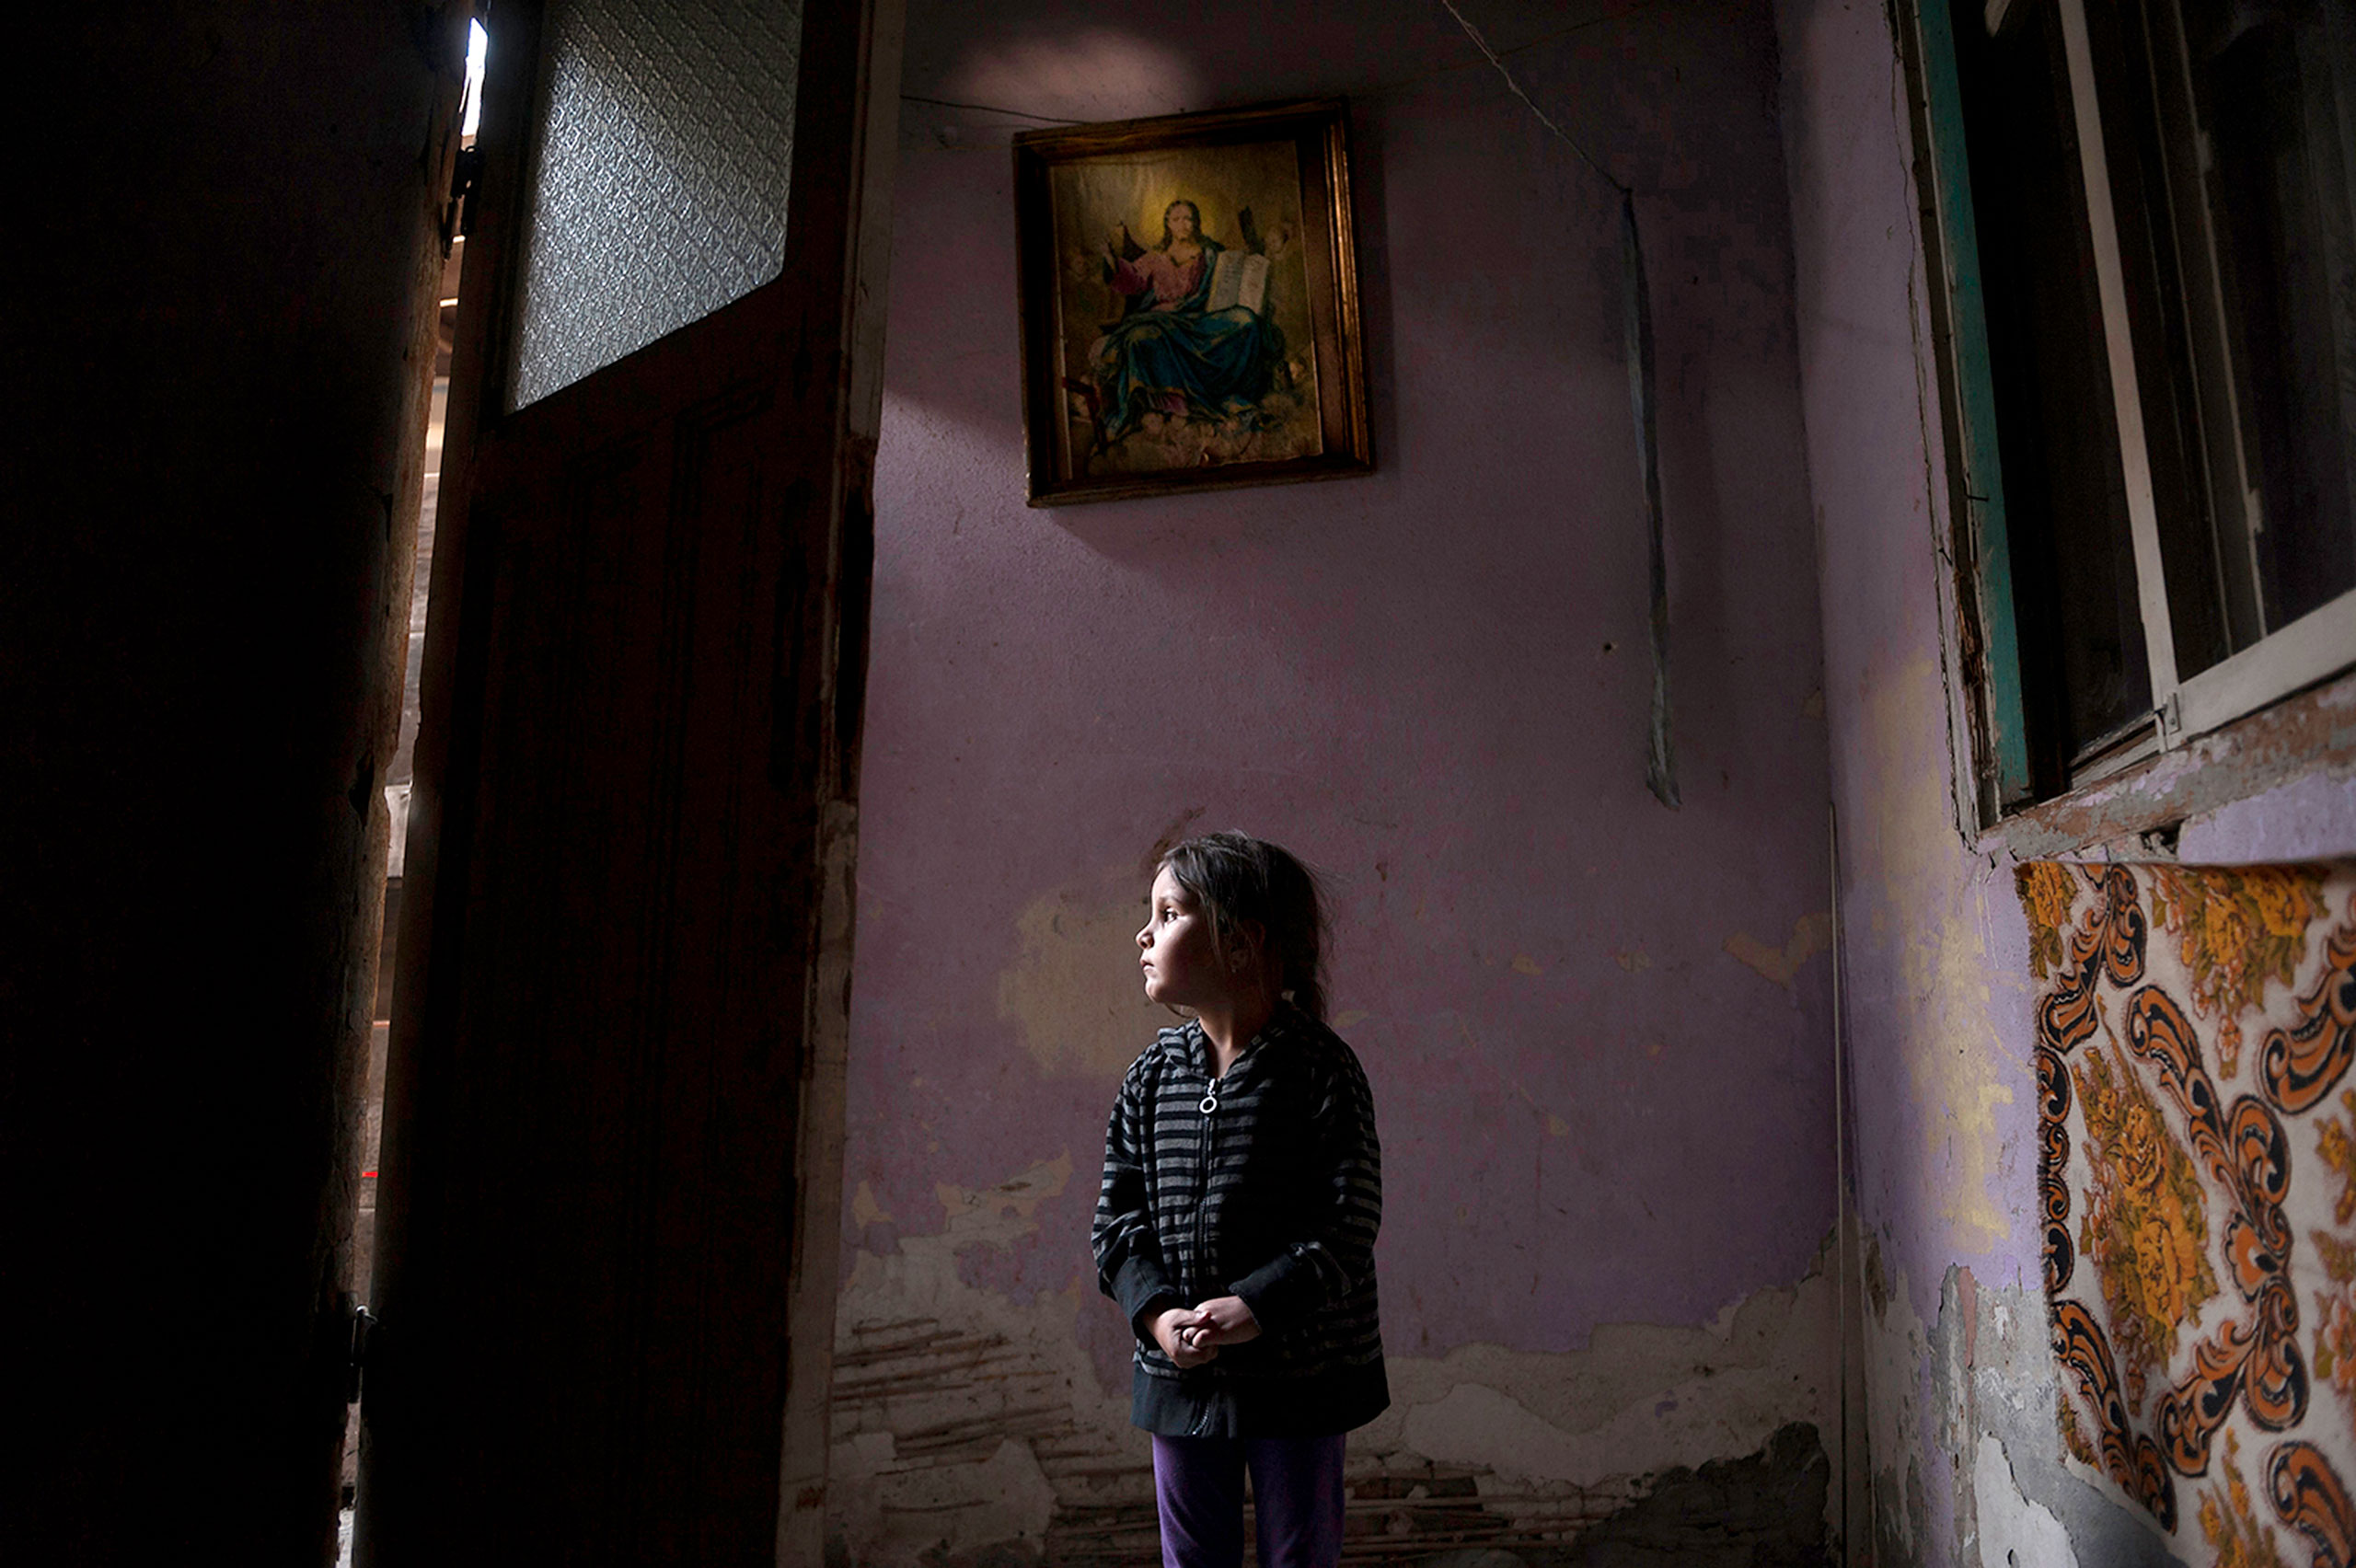 Four-year-old Ana-Maria Tudor, above, stands in the light of her doorway in Bucharest, Romania, hoping for a miracle as her family faces eviction from the only home they have ever had. Her father recently had a gall bladder surgery that resulted in an infection and left him unable to work. The one room they live in has no bathroom or running water.